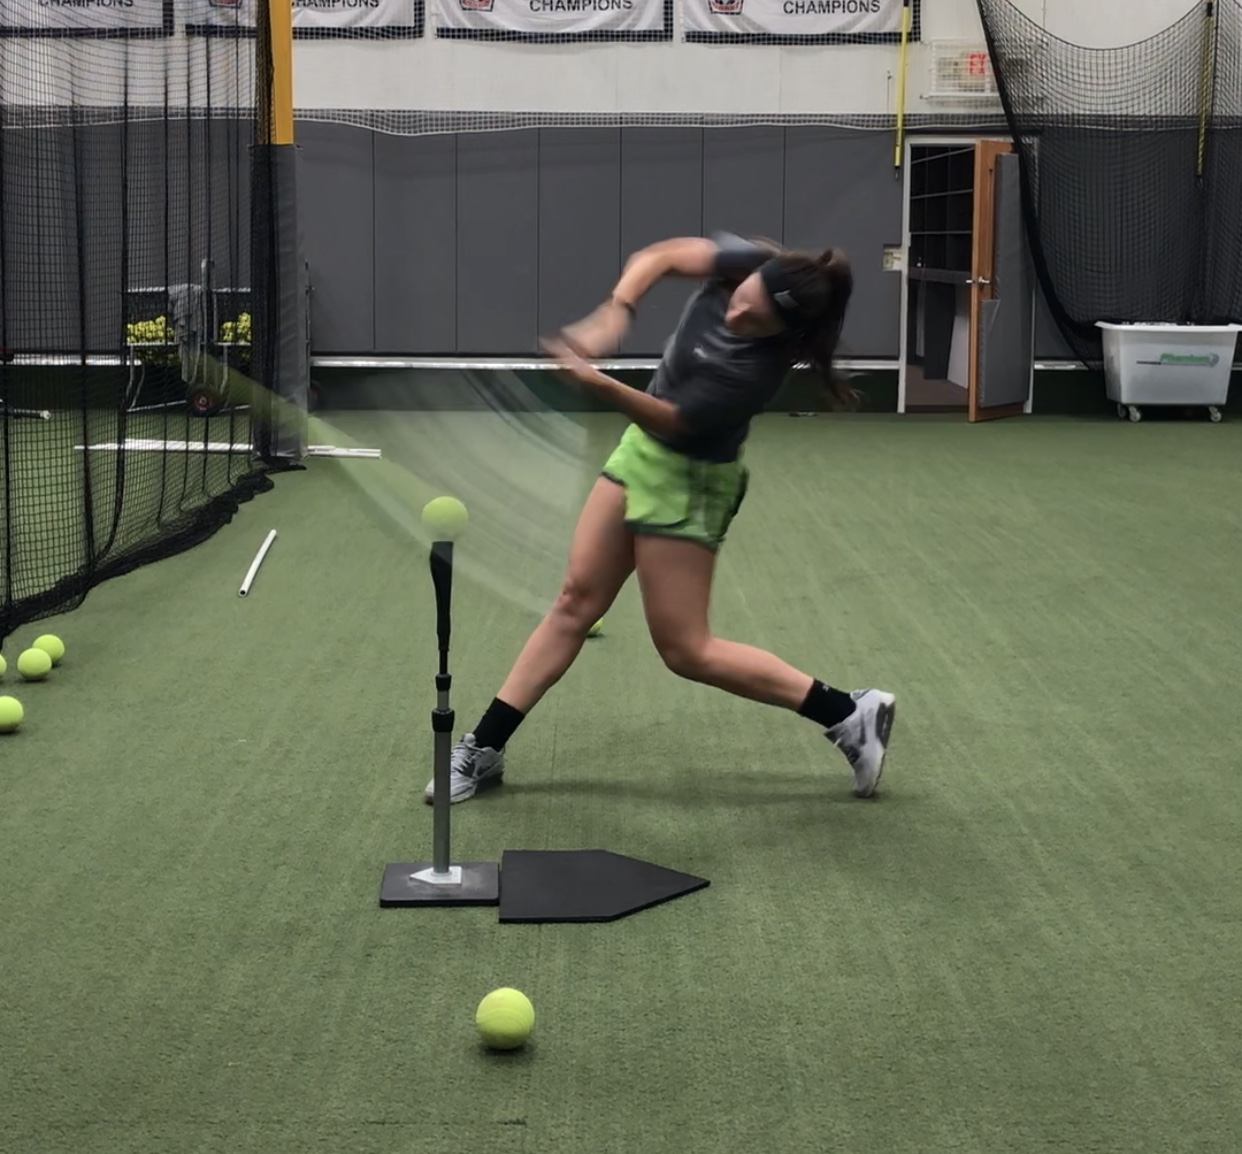 Hitting Programs - An opportunity to fix mechanical and timing issues using both data and metrics over a 4 week span. Offered in groups of 3 or 4 athletes.